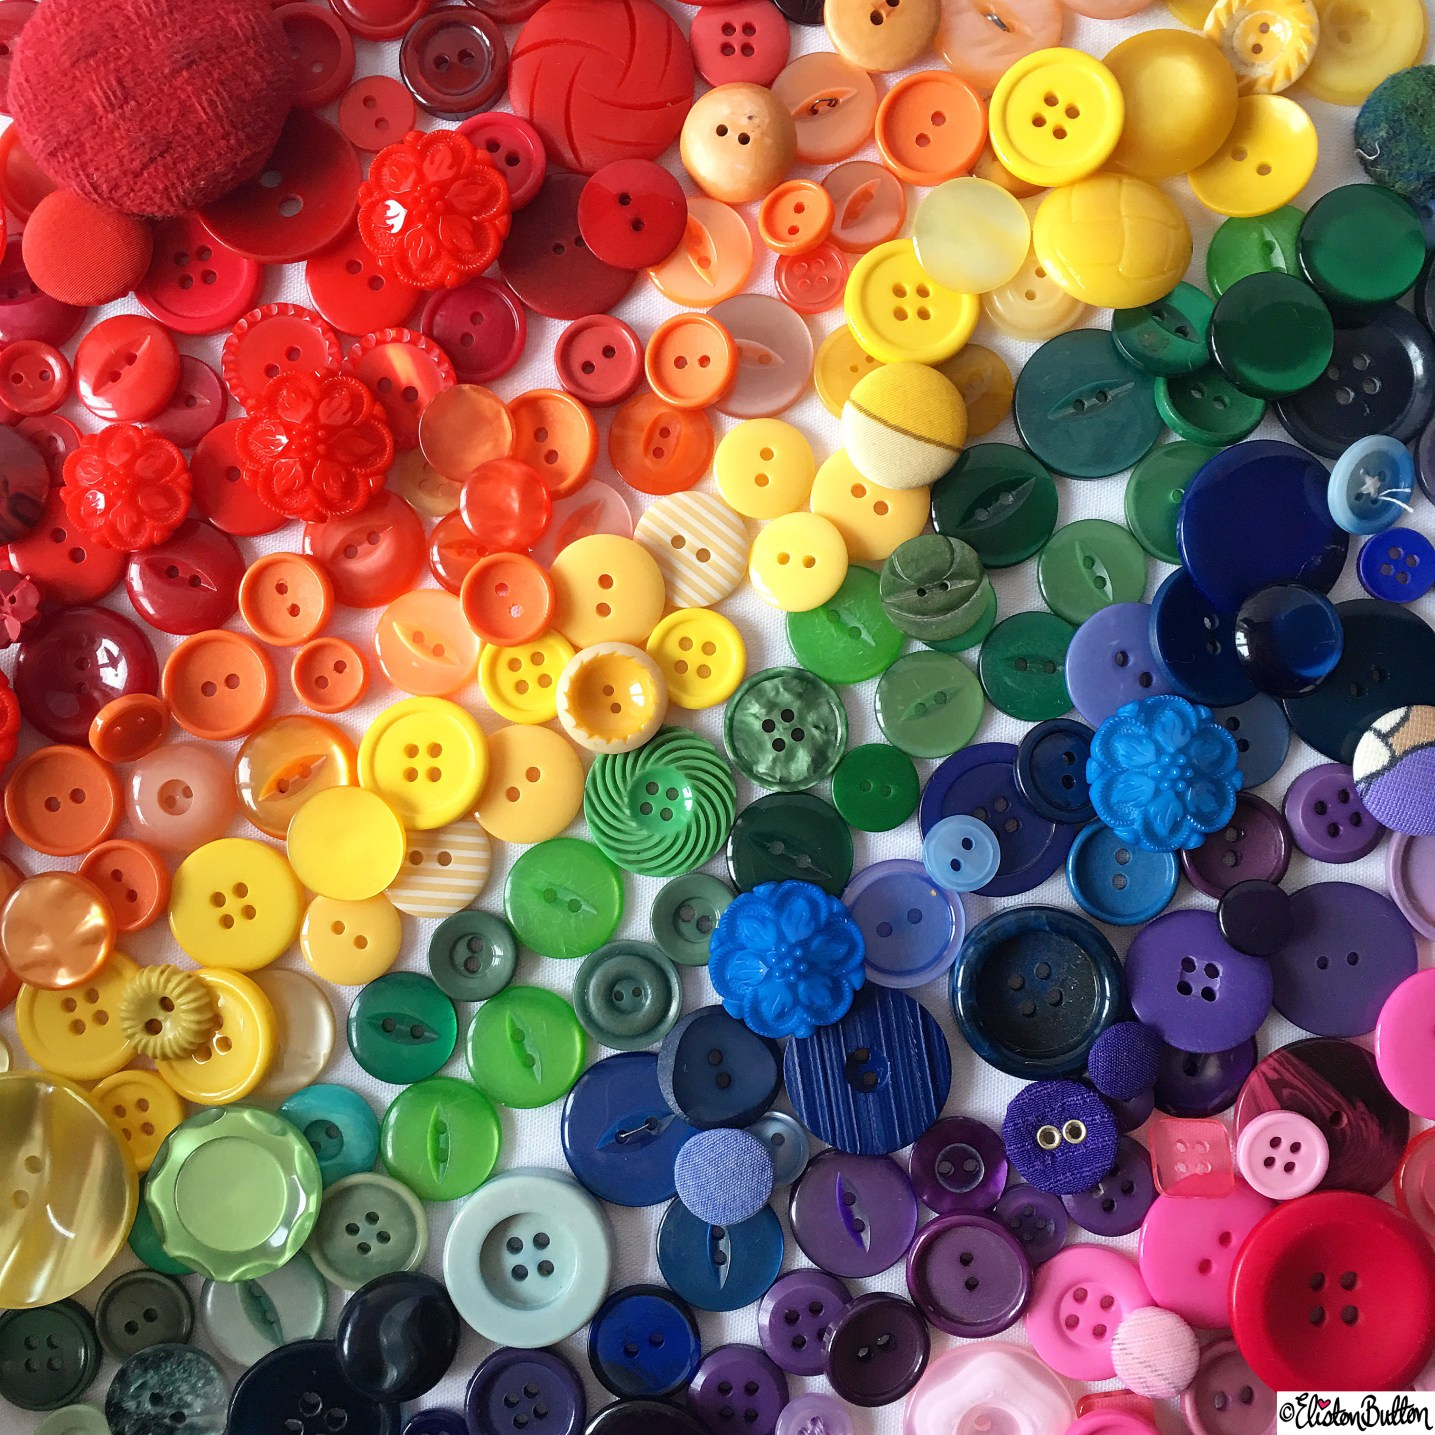 Day 30 - Flatlay - A Rainbow of Buttons! - Photo-a-Day - January 2016 at www.elistonbutton.com - Eliston Button - That Crafty Kid – Art, Design, Craft and Adventure.